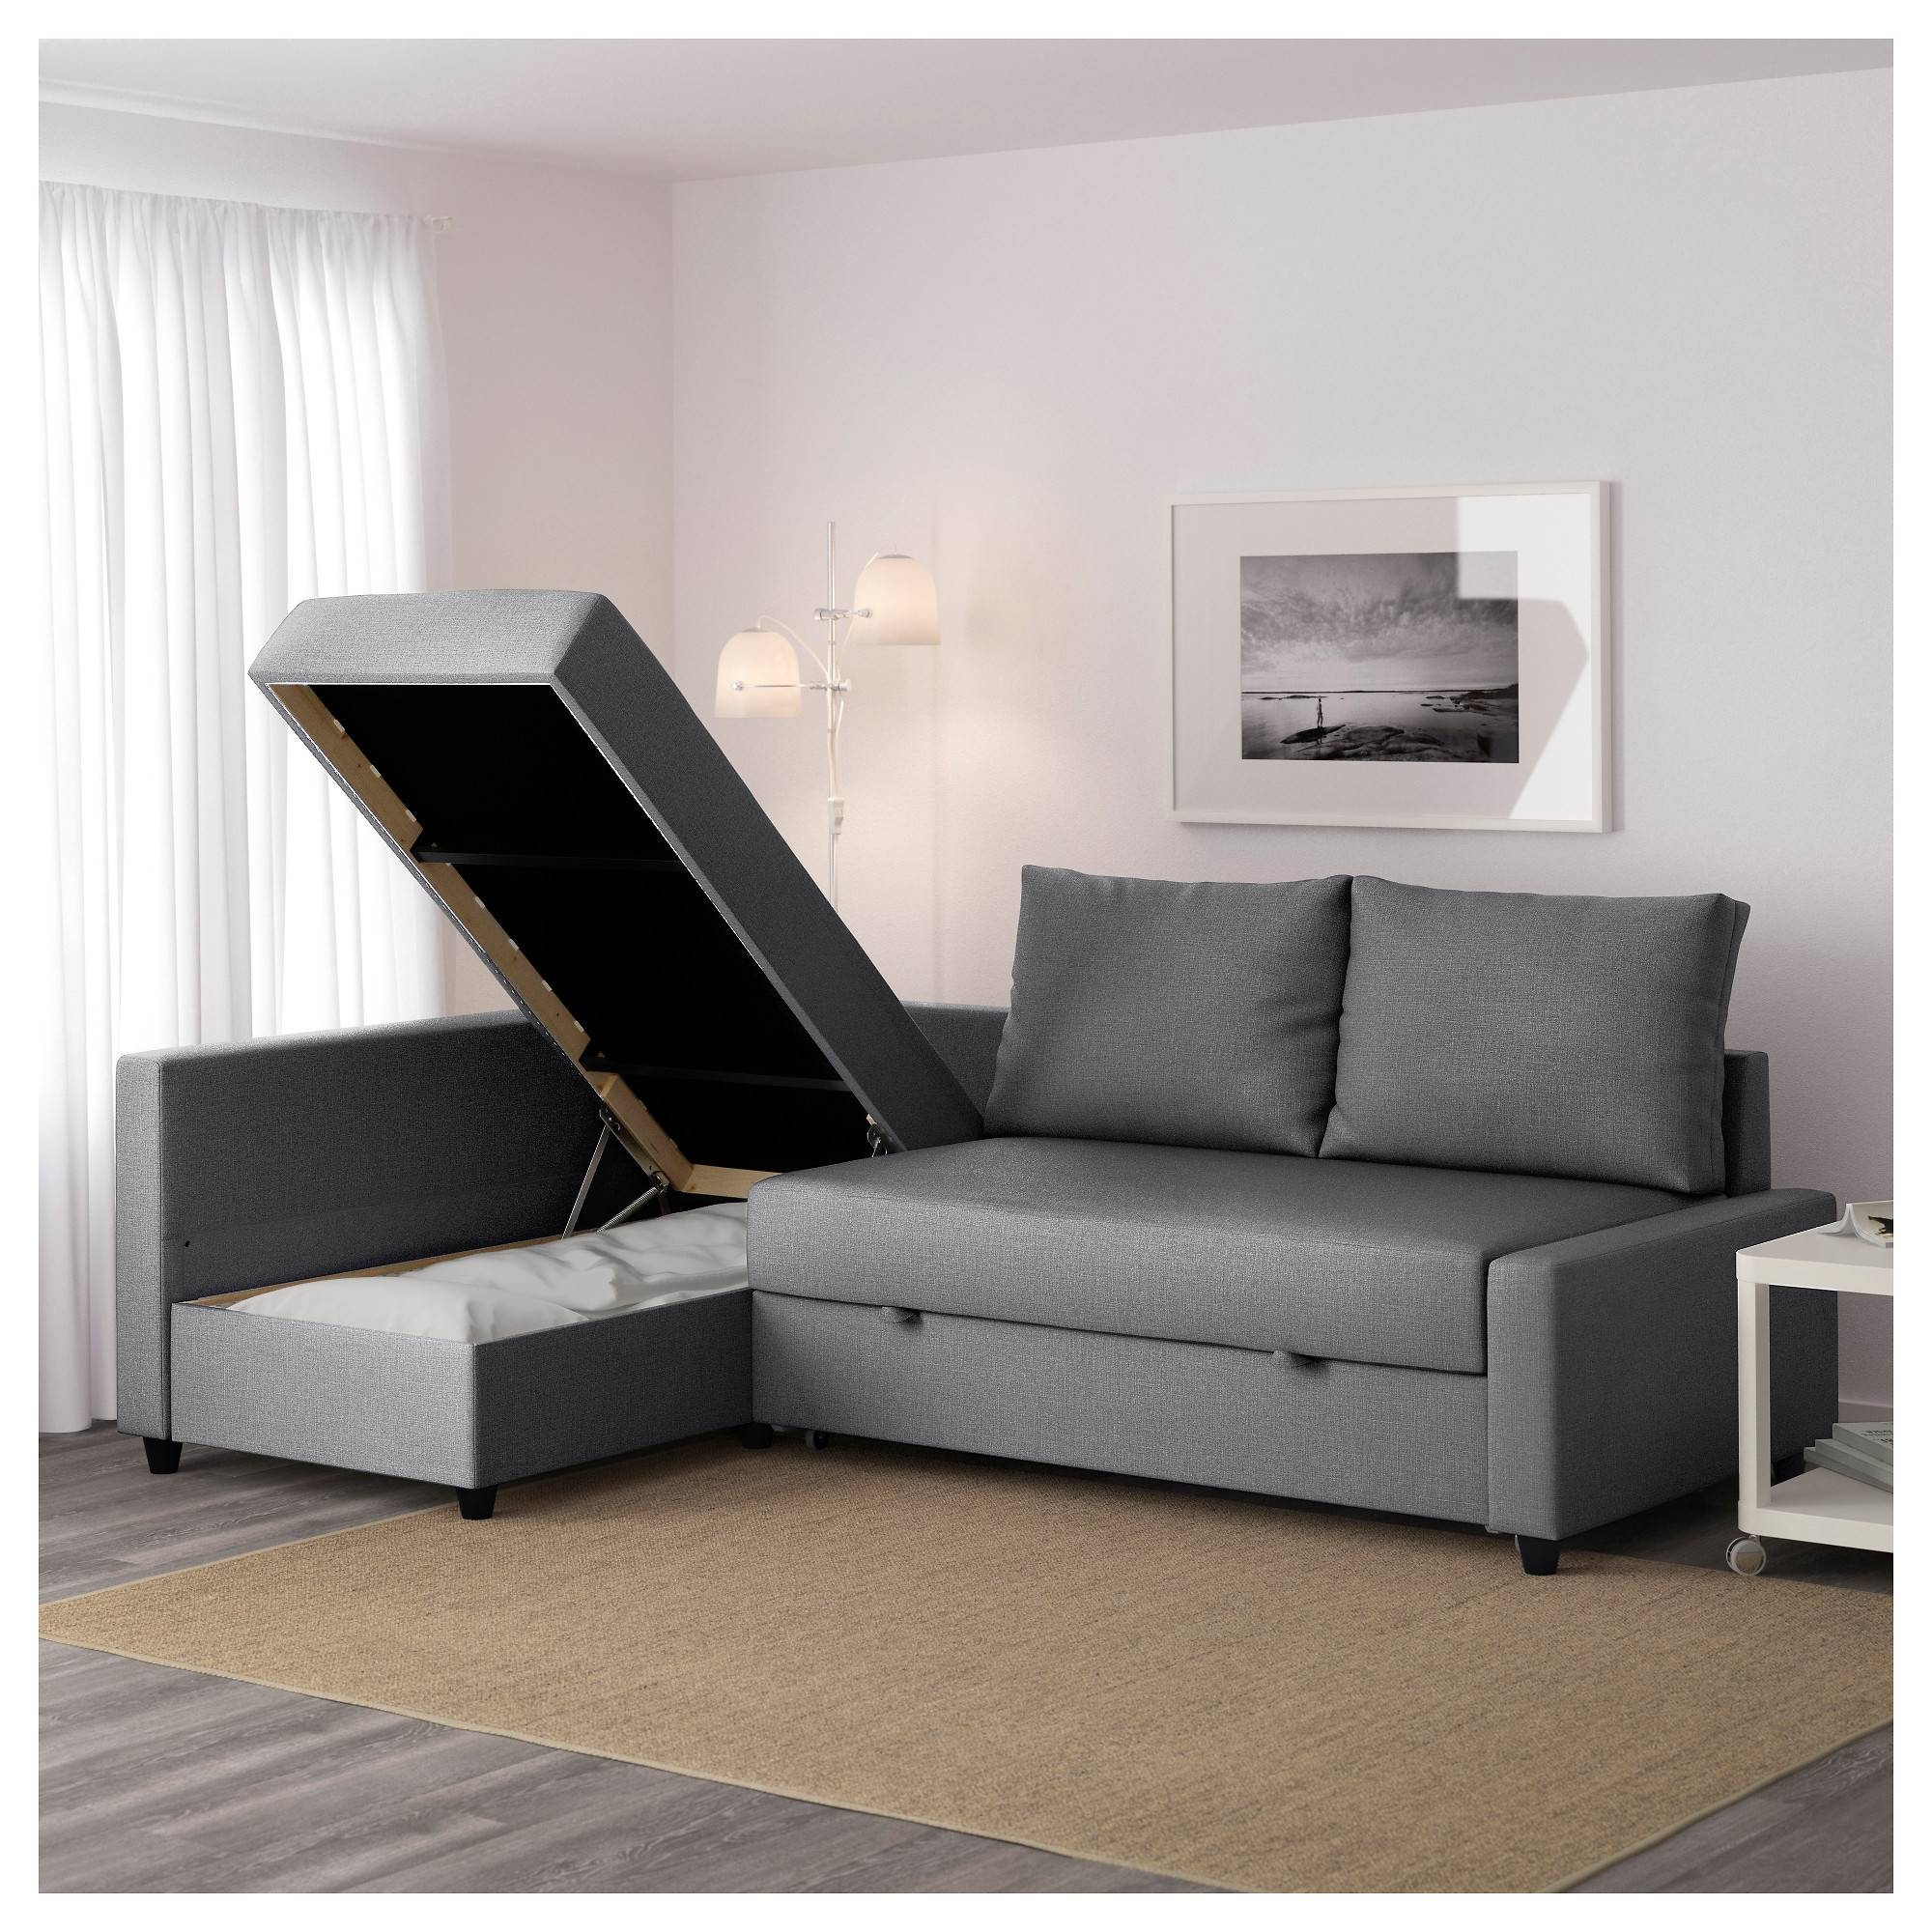 Friheten Corner Sofa-Bed With Storage Skiftebo Dark Grey - Ikea with Corner Couch Bed (Image 19 of 30)